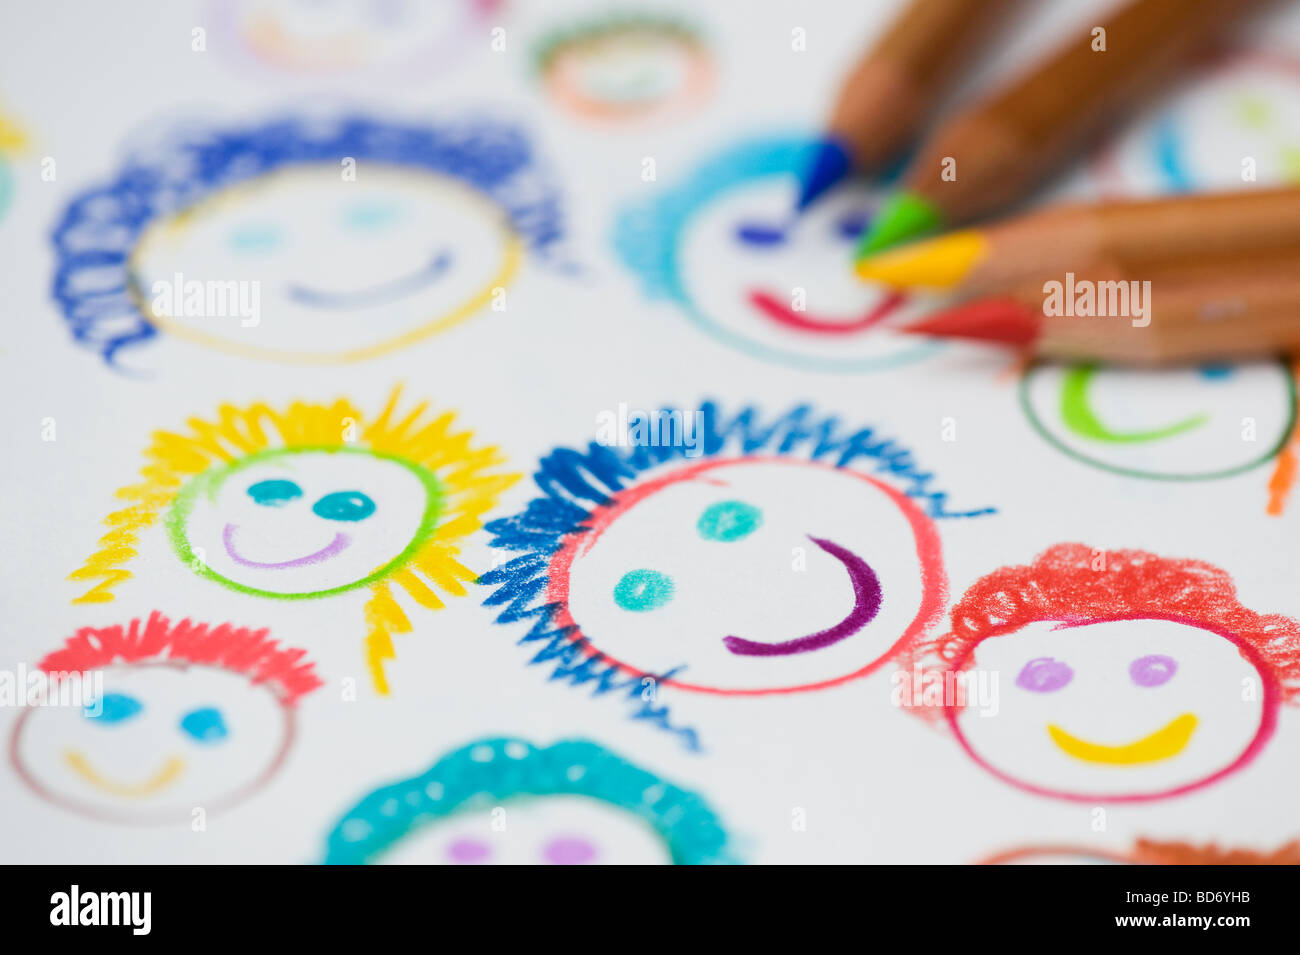 Childs coloured drawing of happy smiling faces with colouring pencils Stock Photo